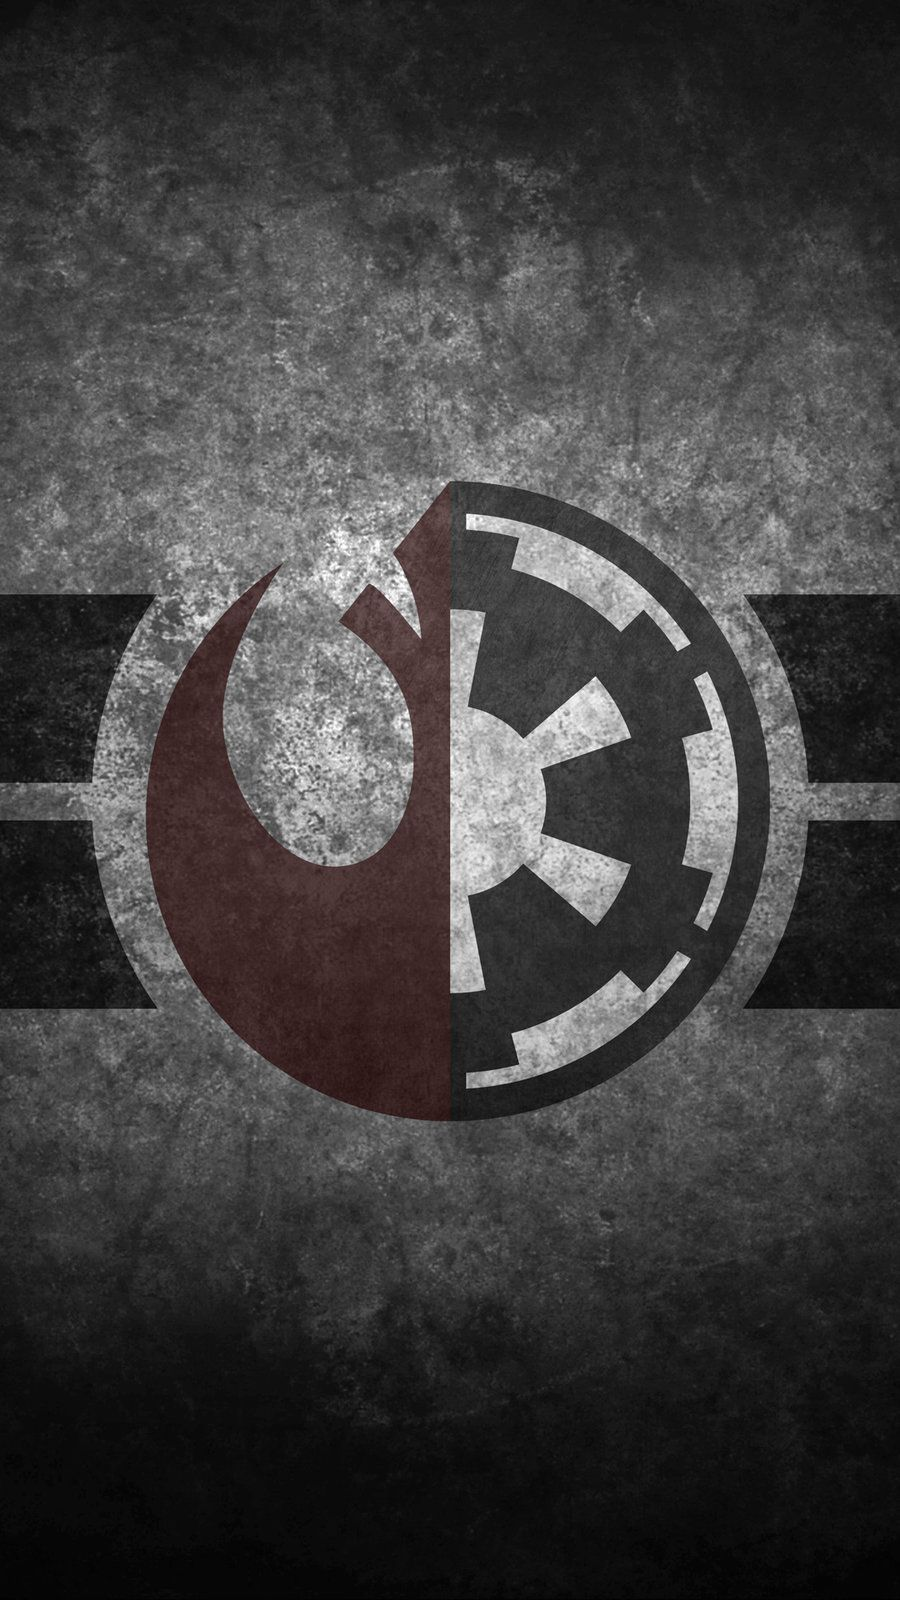 Star Wars   Quality Cell Phone Backgrounds   Star wars ...